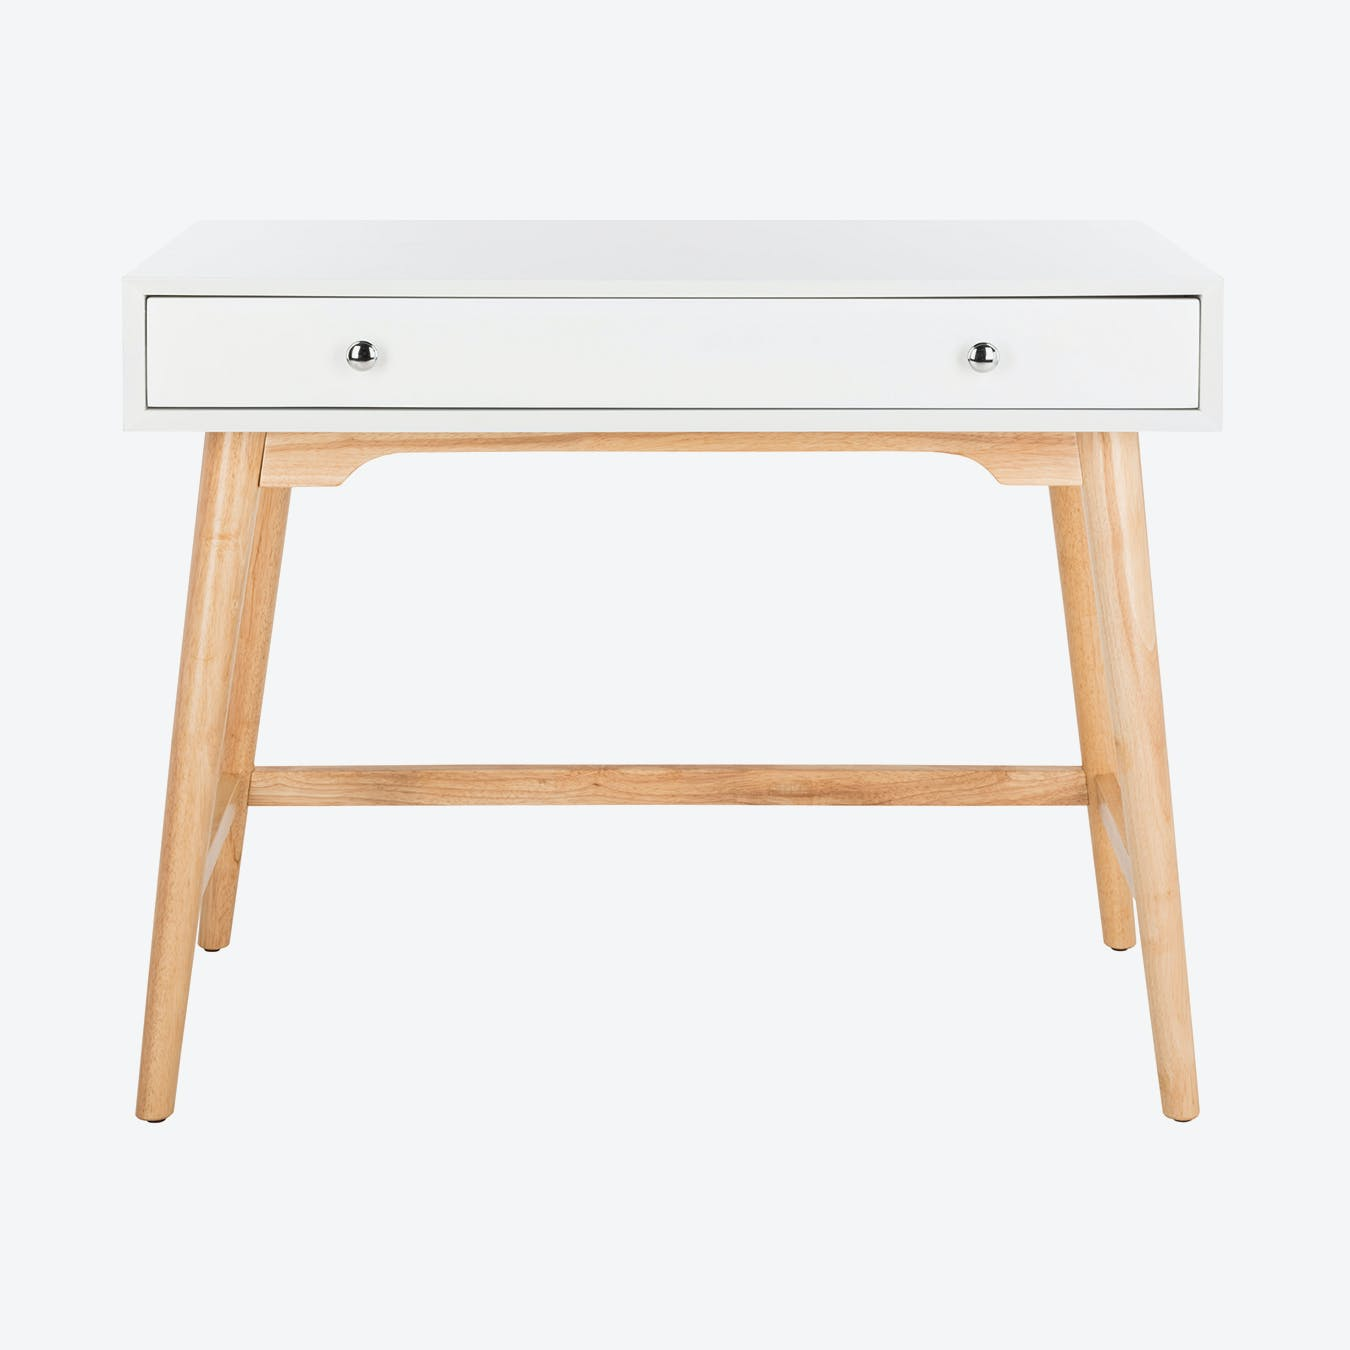 Image of: Wooden Modern Mid Century Desk In White Natural By Safavieh Fy